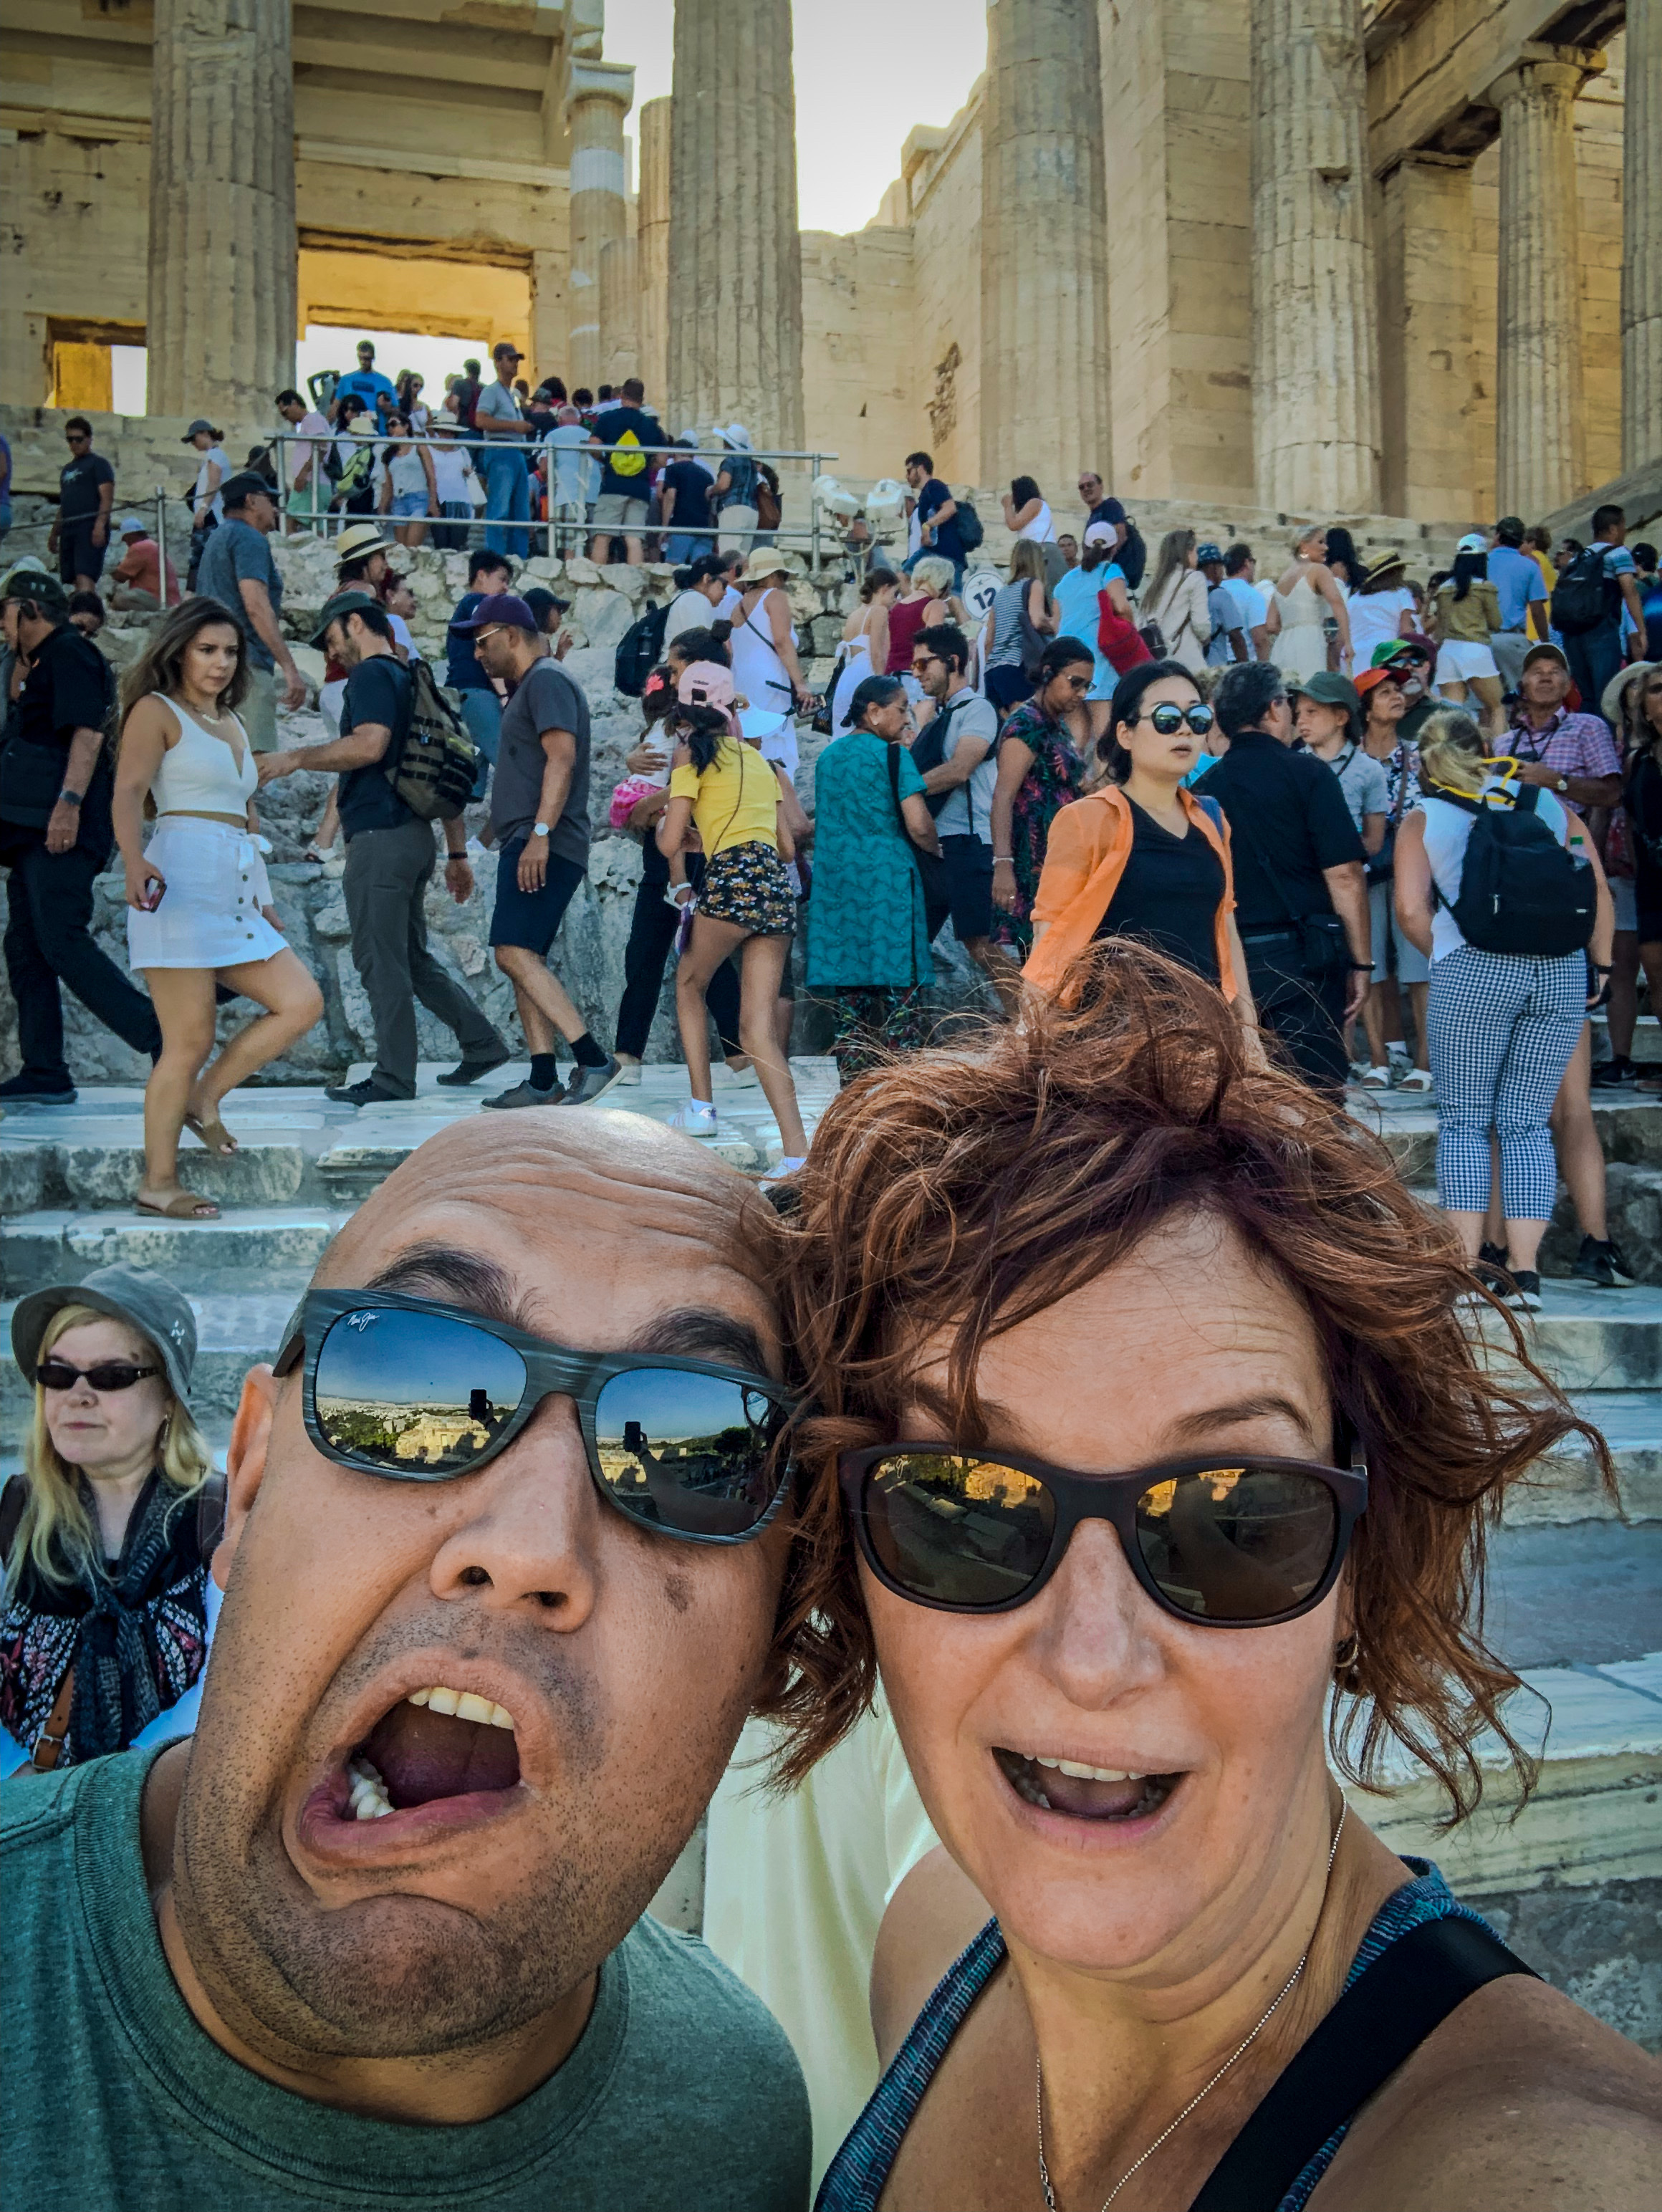 The Parthenon at the Acropolis in Athens, Greece at 9:12am with our shocked faces as the crowd gets even larger behind us.